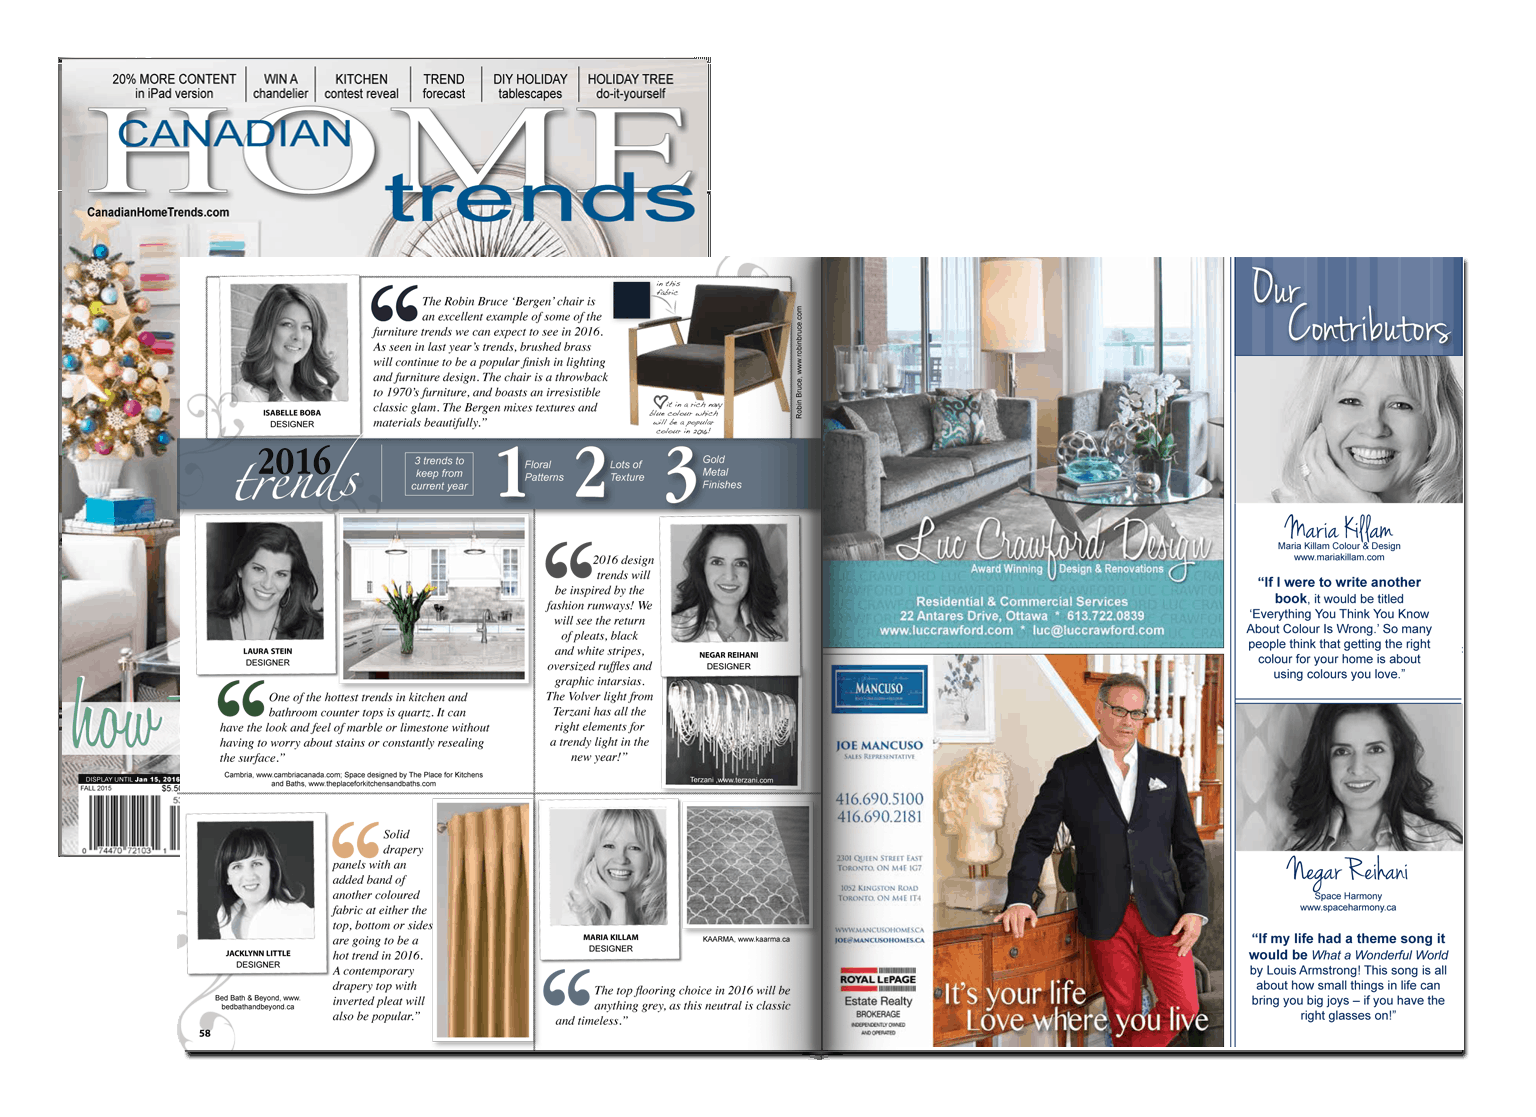 Canadian Home Trends – 2016 Trends Prediction